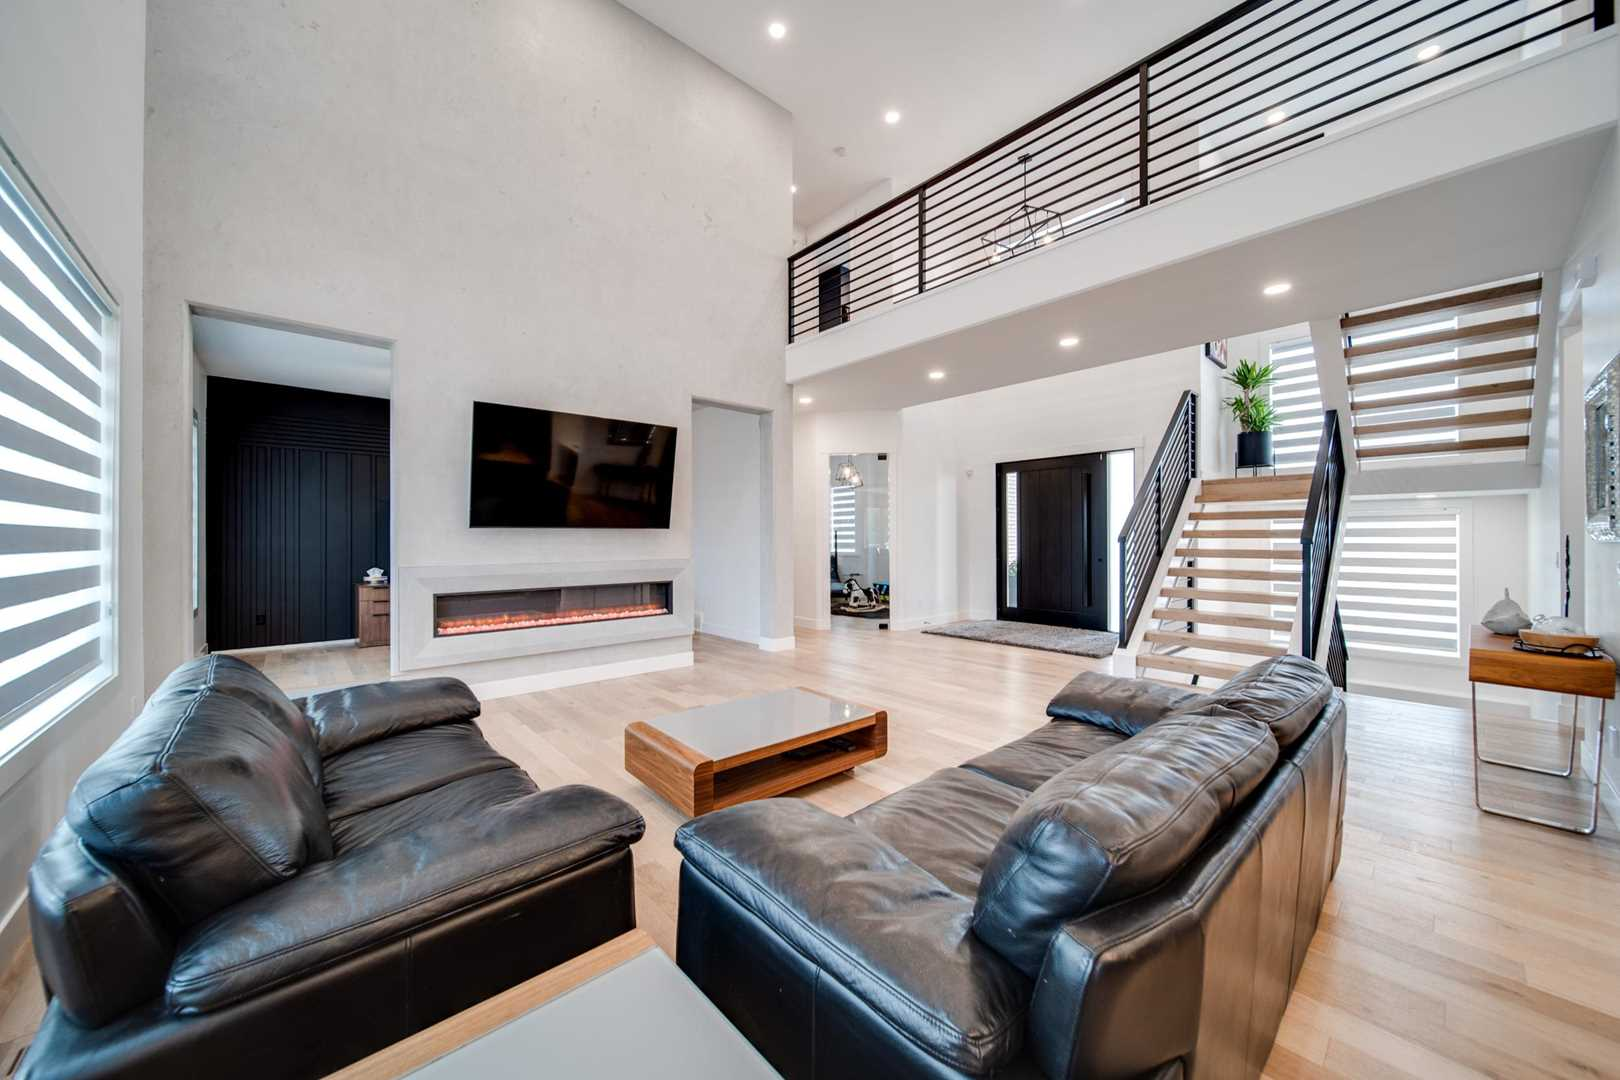 Interior living room, white ceiling and walls, light hardwood floor; two black couches in foreground in front of wood coffee table, facing wall-mounted TV; open air stairs to right